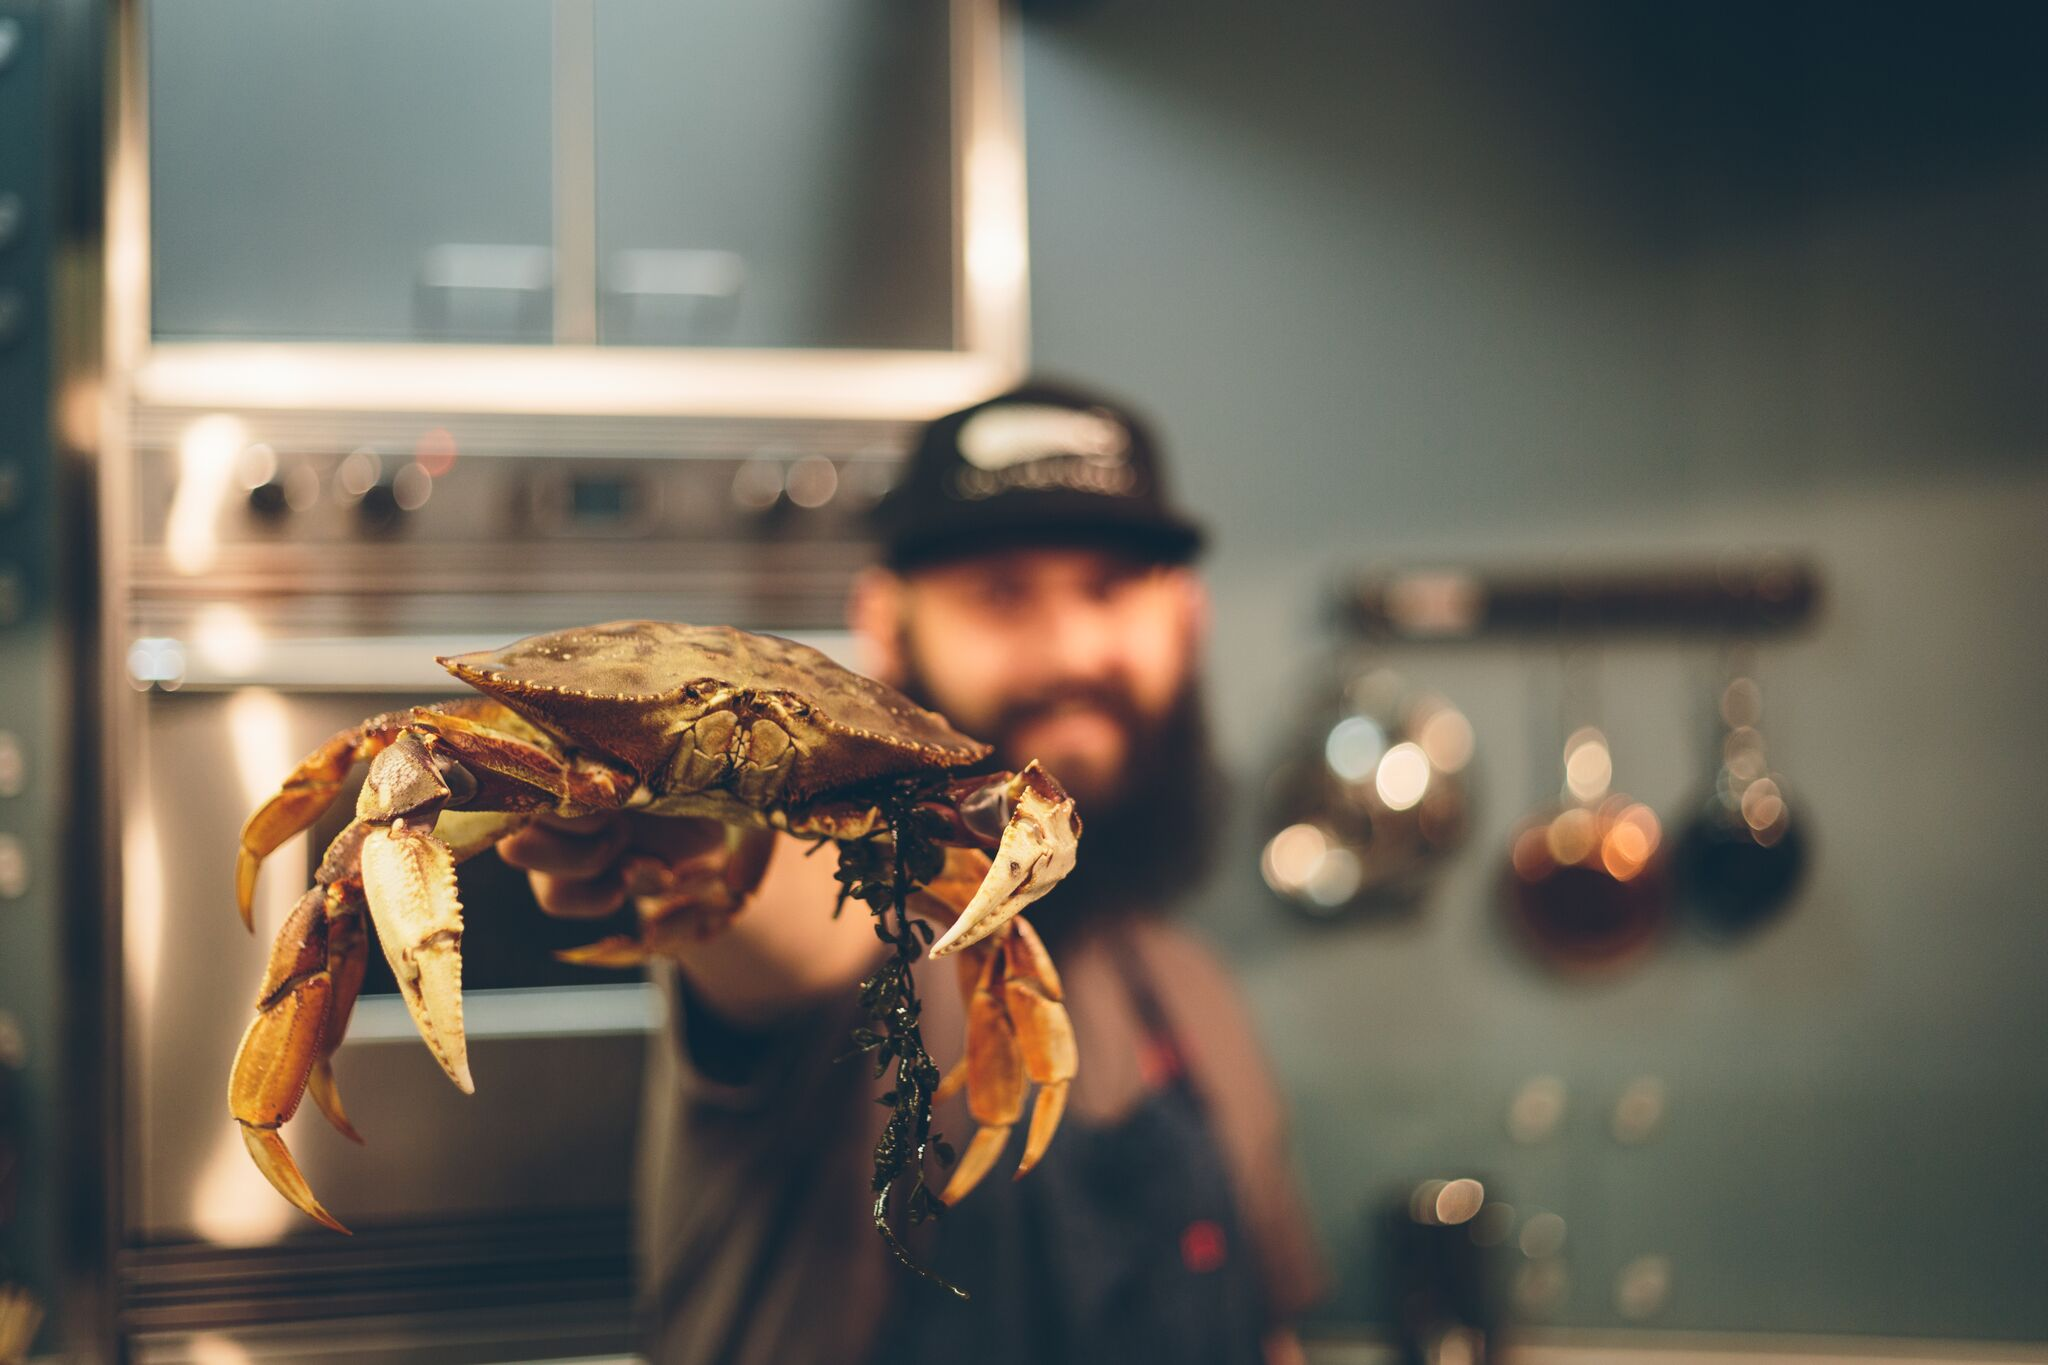 You know isn't going to be a boring lecture when there are crabs involved! (Culinary Institute of America presents Conversations at Copia)